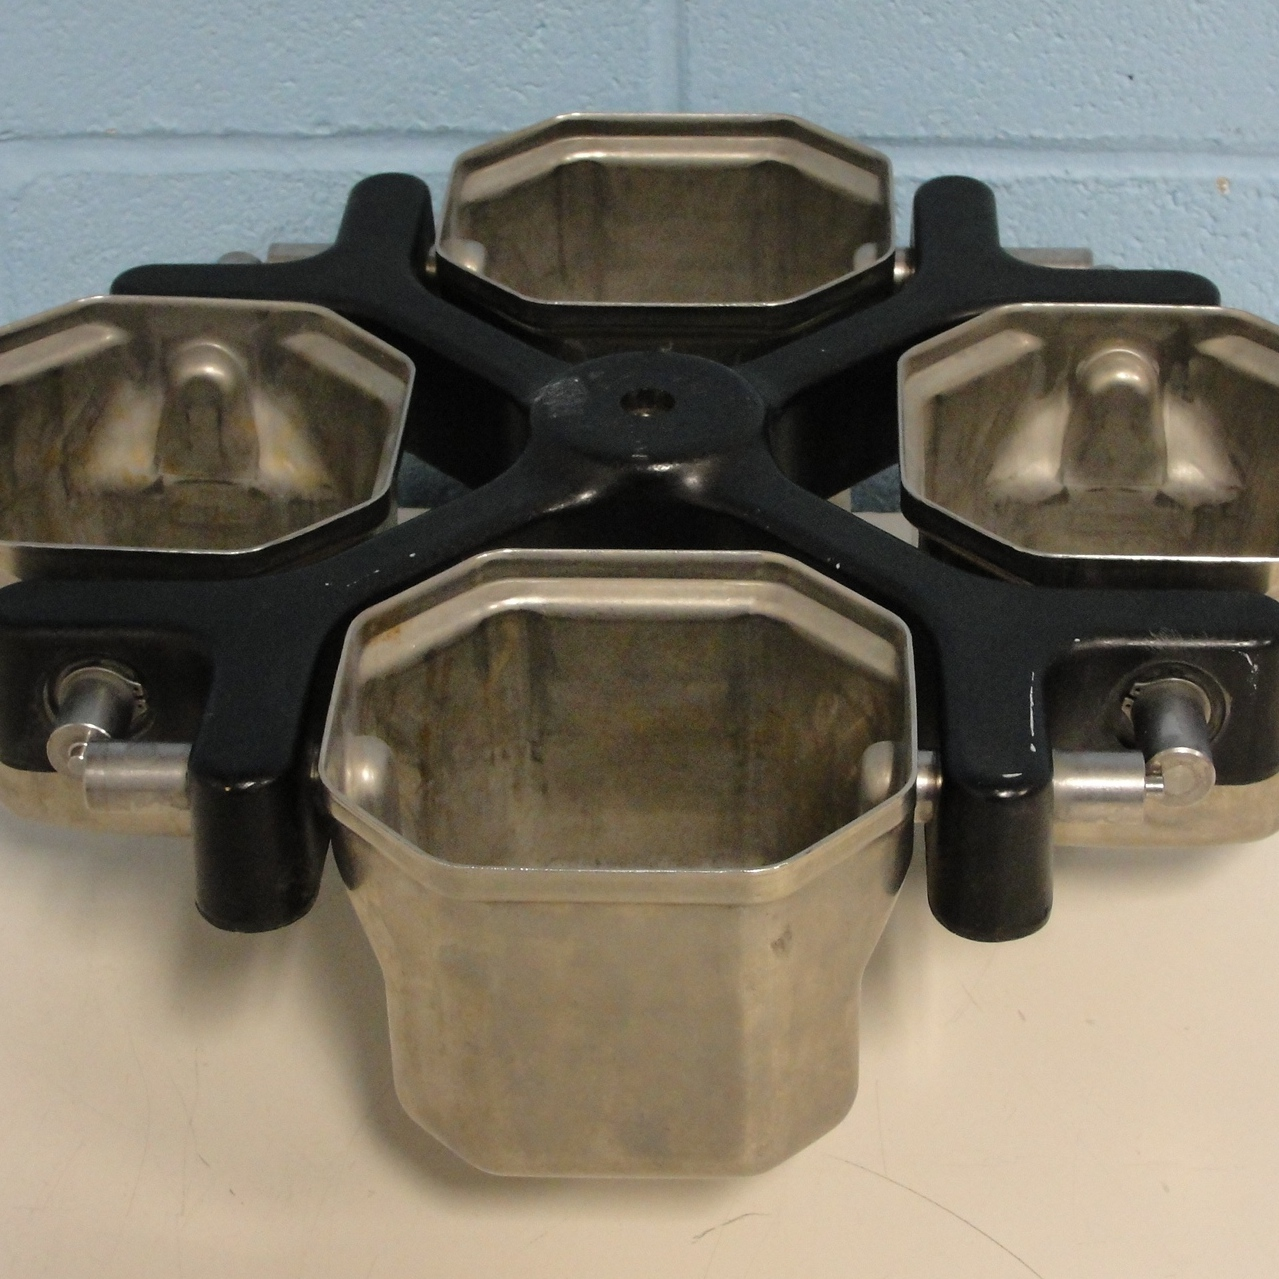 Beckman Coulter TH-4 rotor with buckets Image